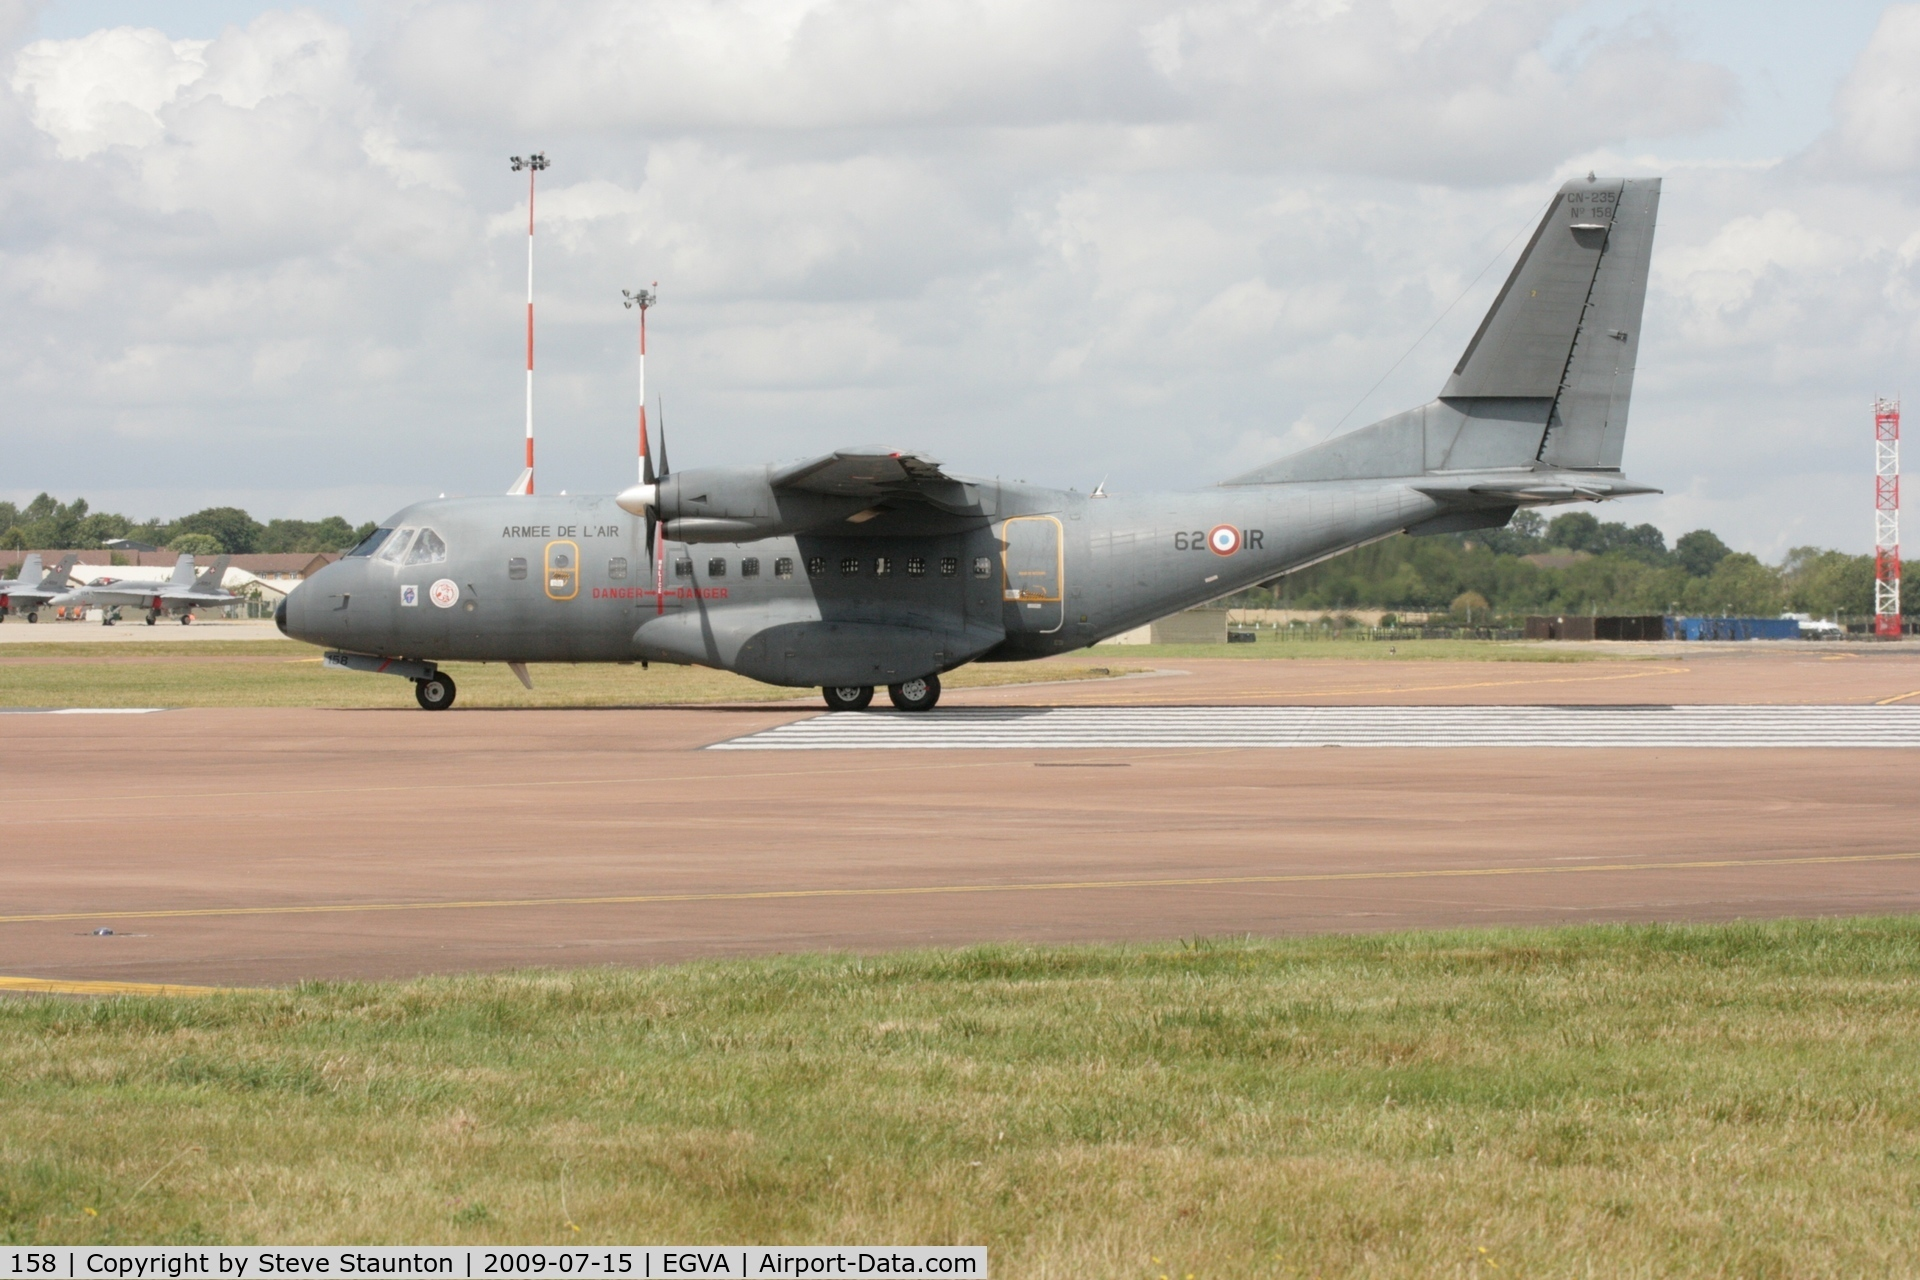 158, Airtech CN-235-200M C/N C158, Taken at the Royal International Air Tattoo 2009